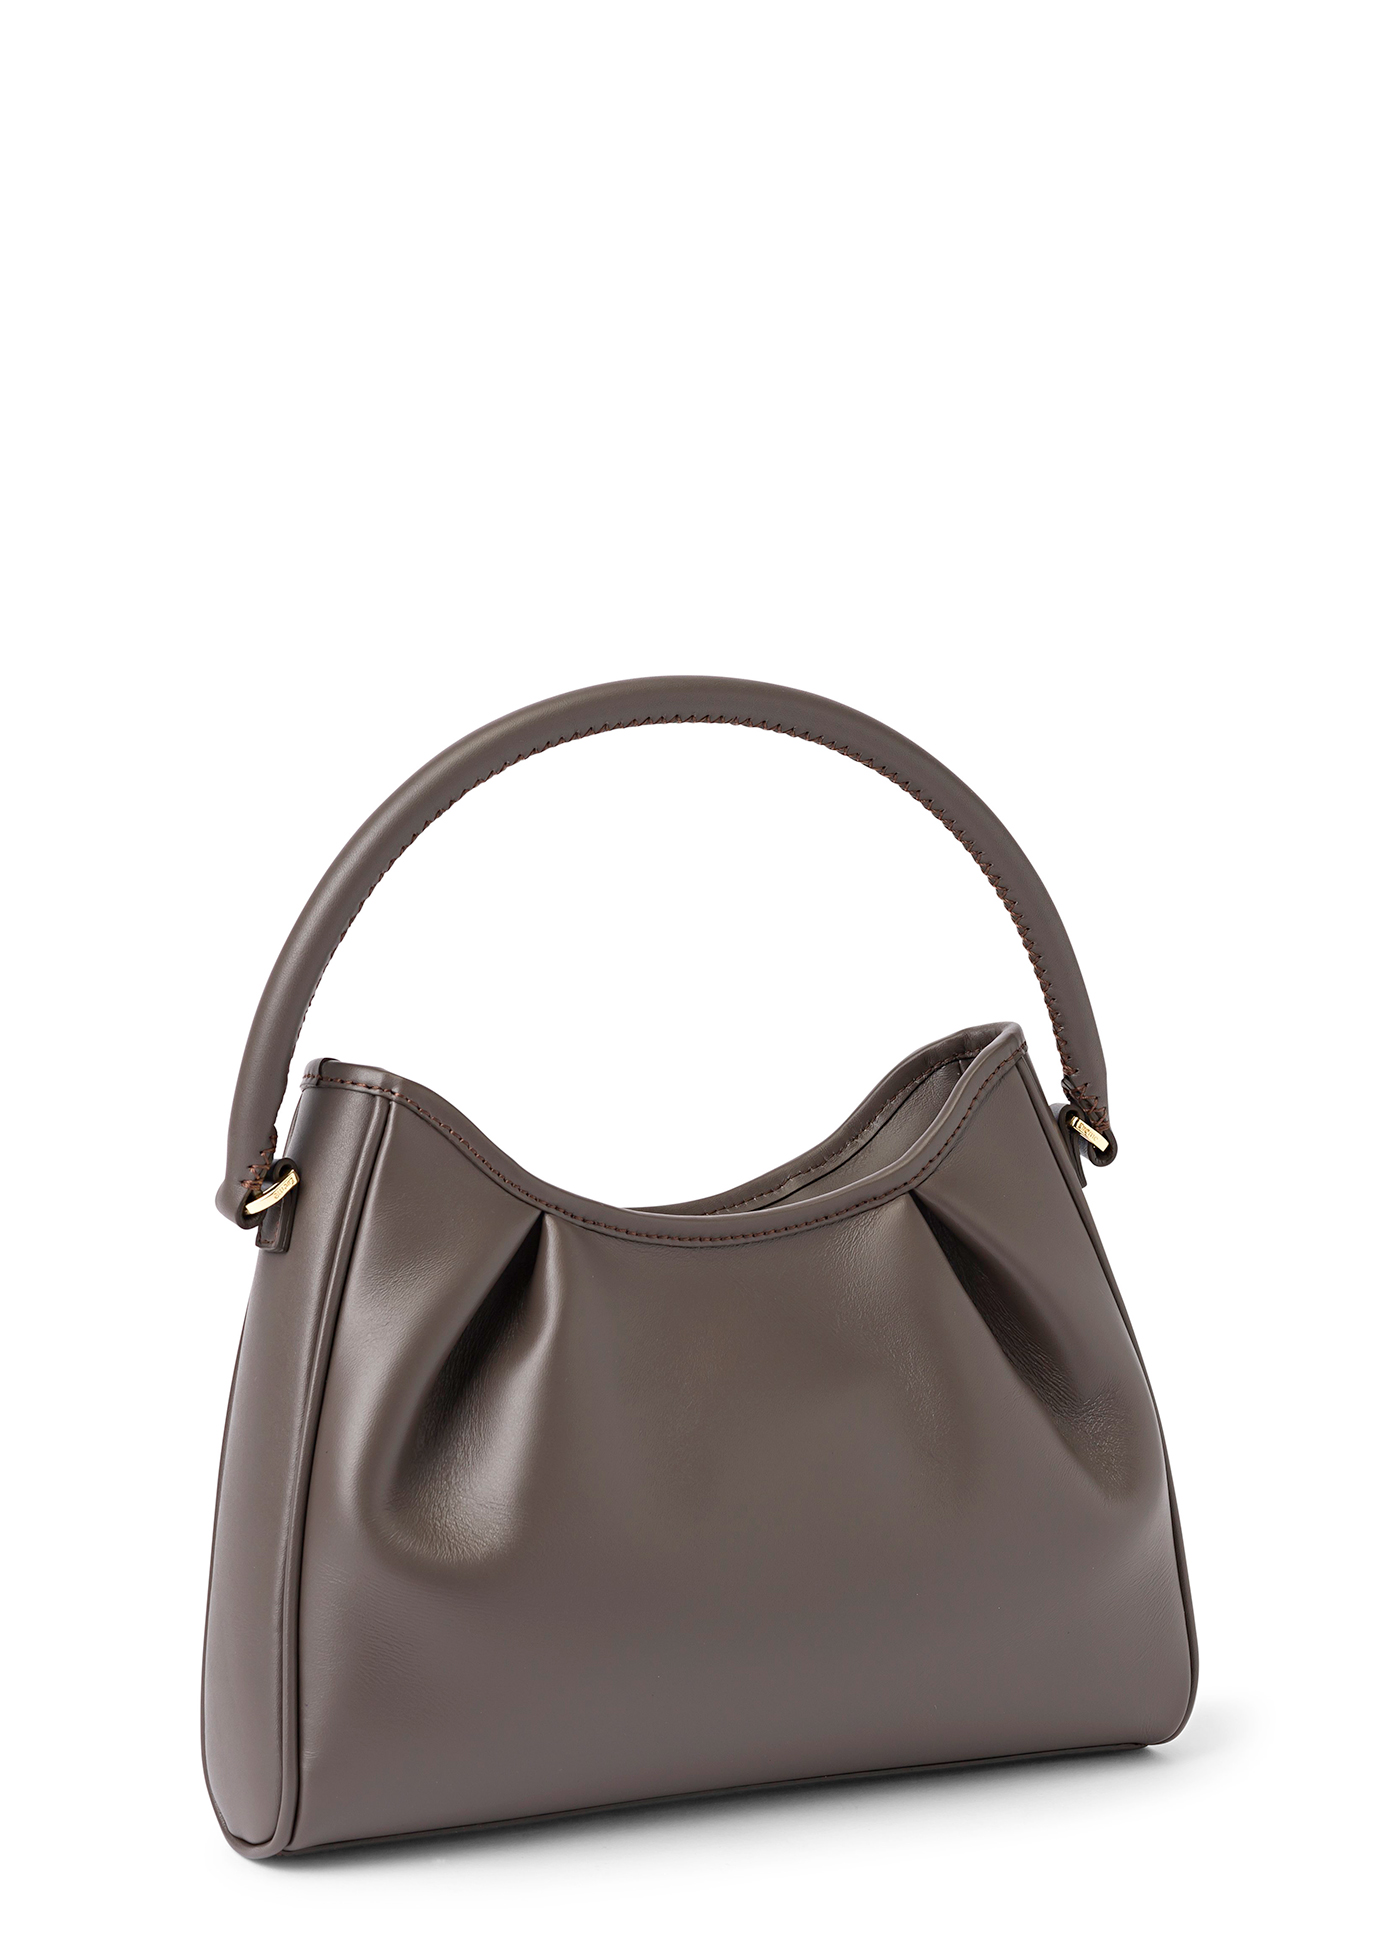 Large Dimple Leather image number 1